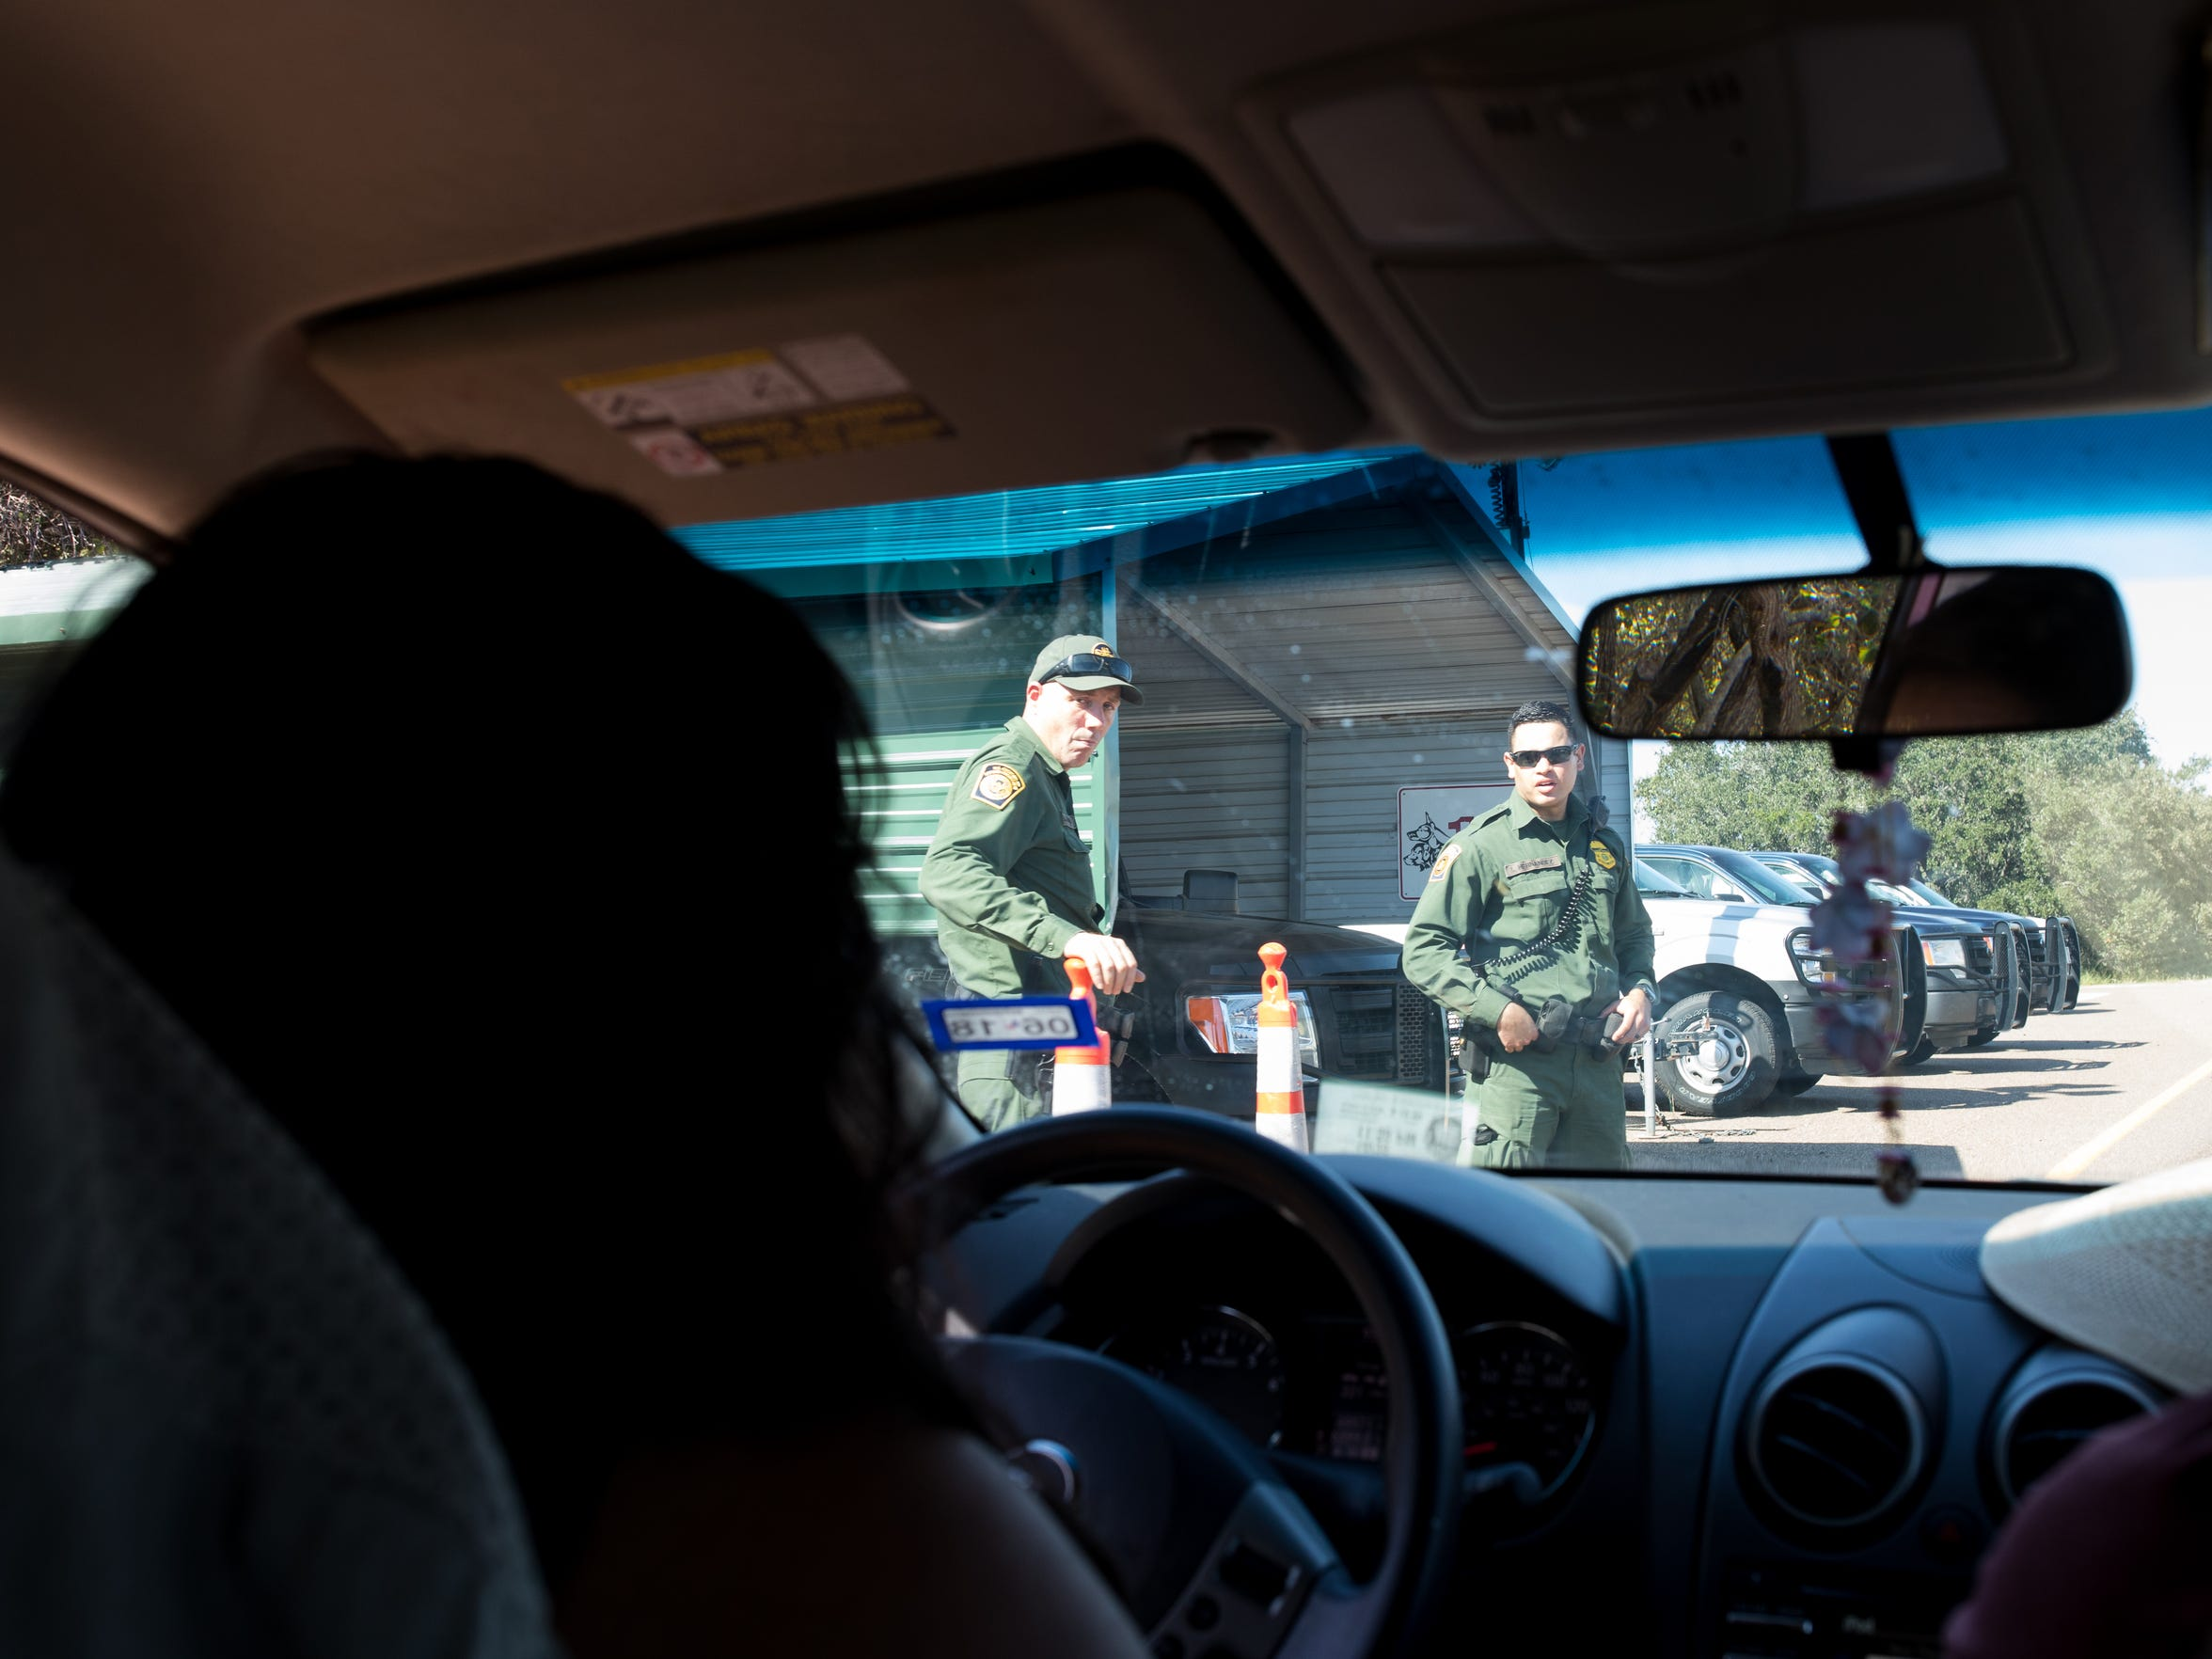 DACA recipient Maria Hernandez on her way to Kingsville Tx enters the interior Border Patrol checkpoint in Sarita, Texas after visiting her mother in Alamo on Sunday Nov. 5, 2017. On September Maria was detained by the Border Patrol at the Sarita Texas interior checkpoint for two hours to verify her DACA status.